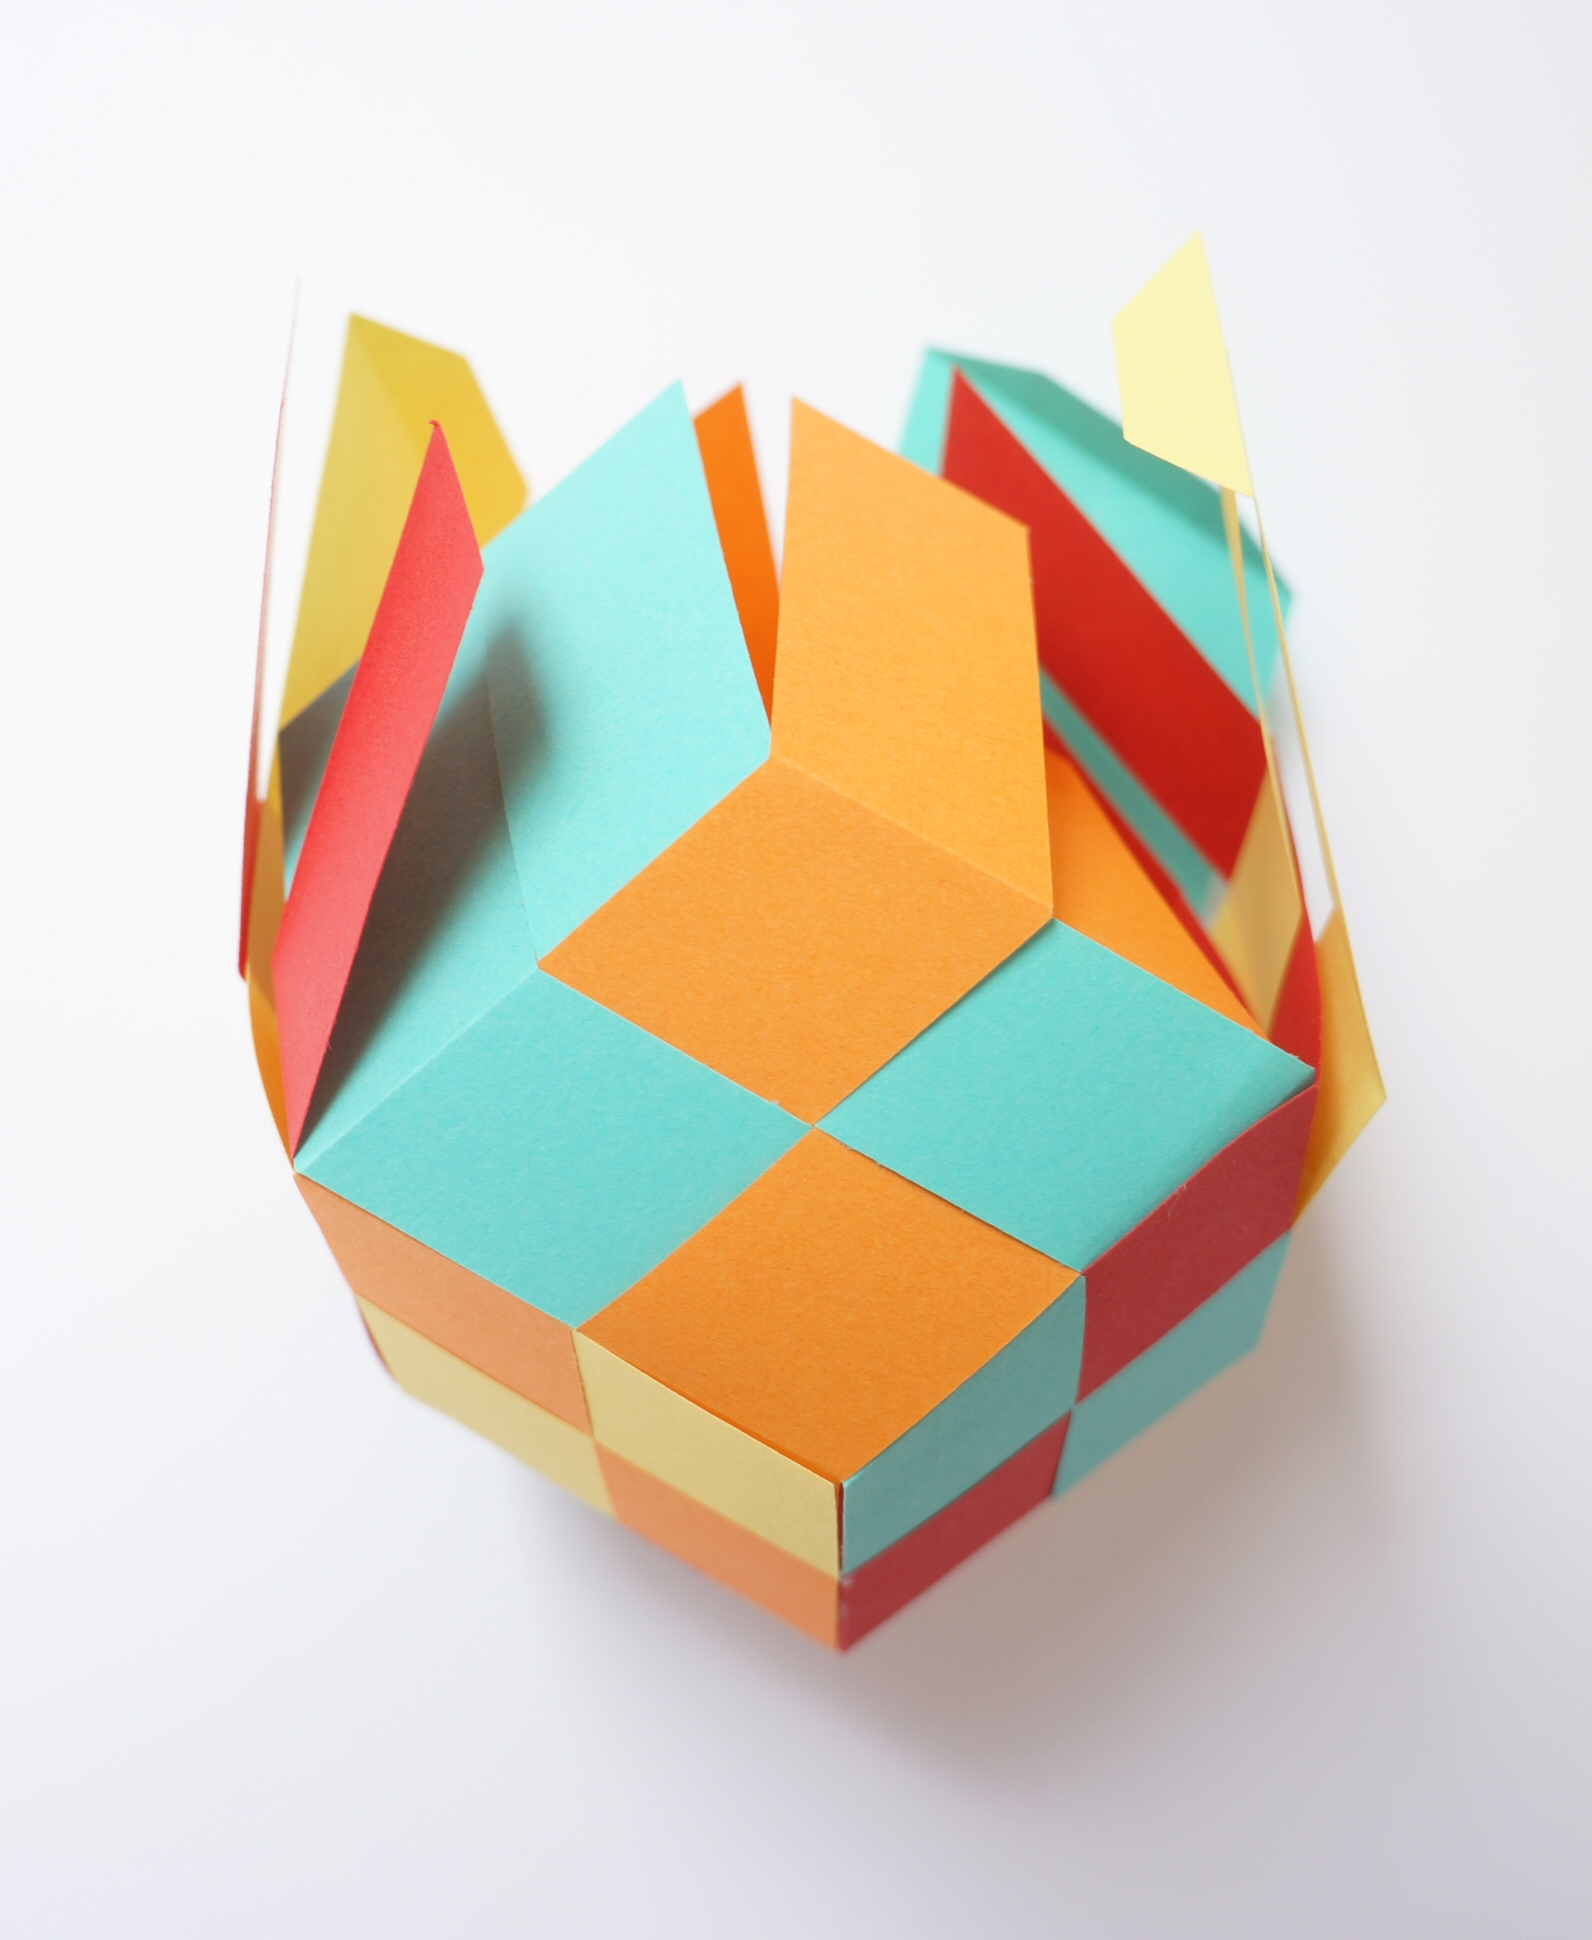 how to make a dodecahedron out of paper